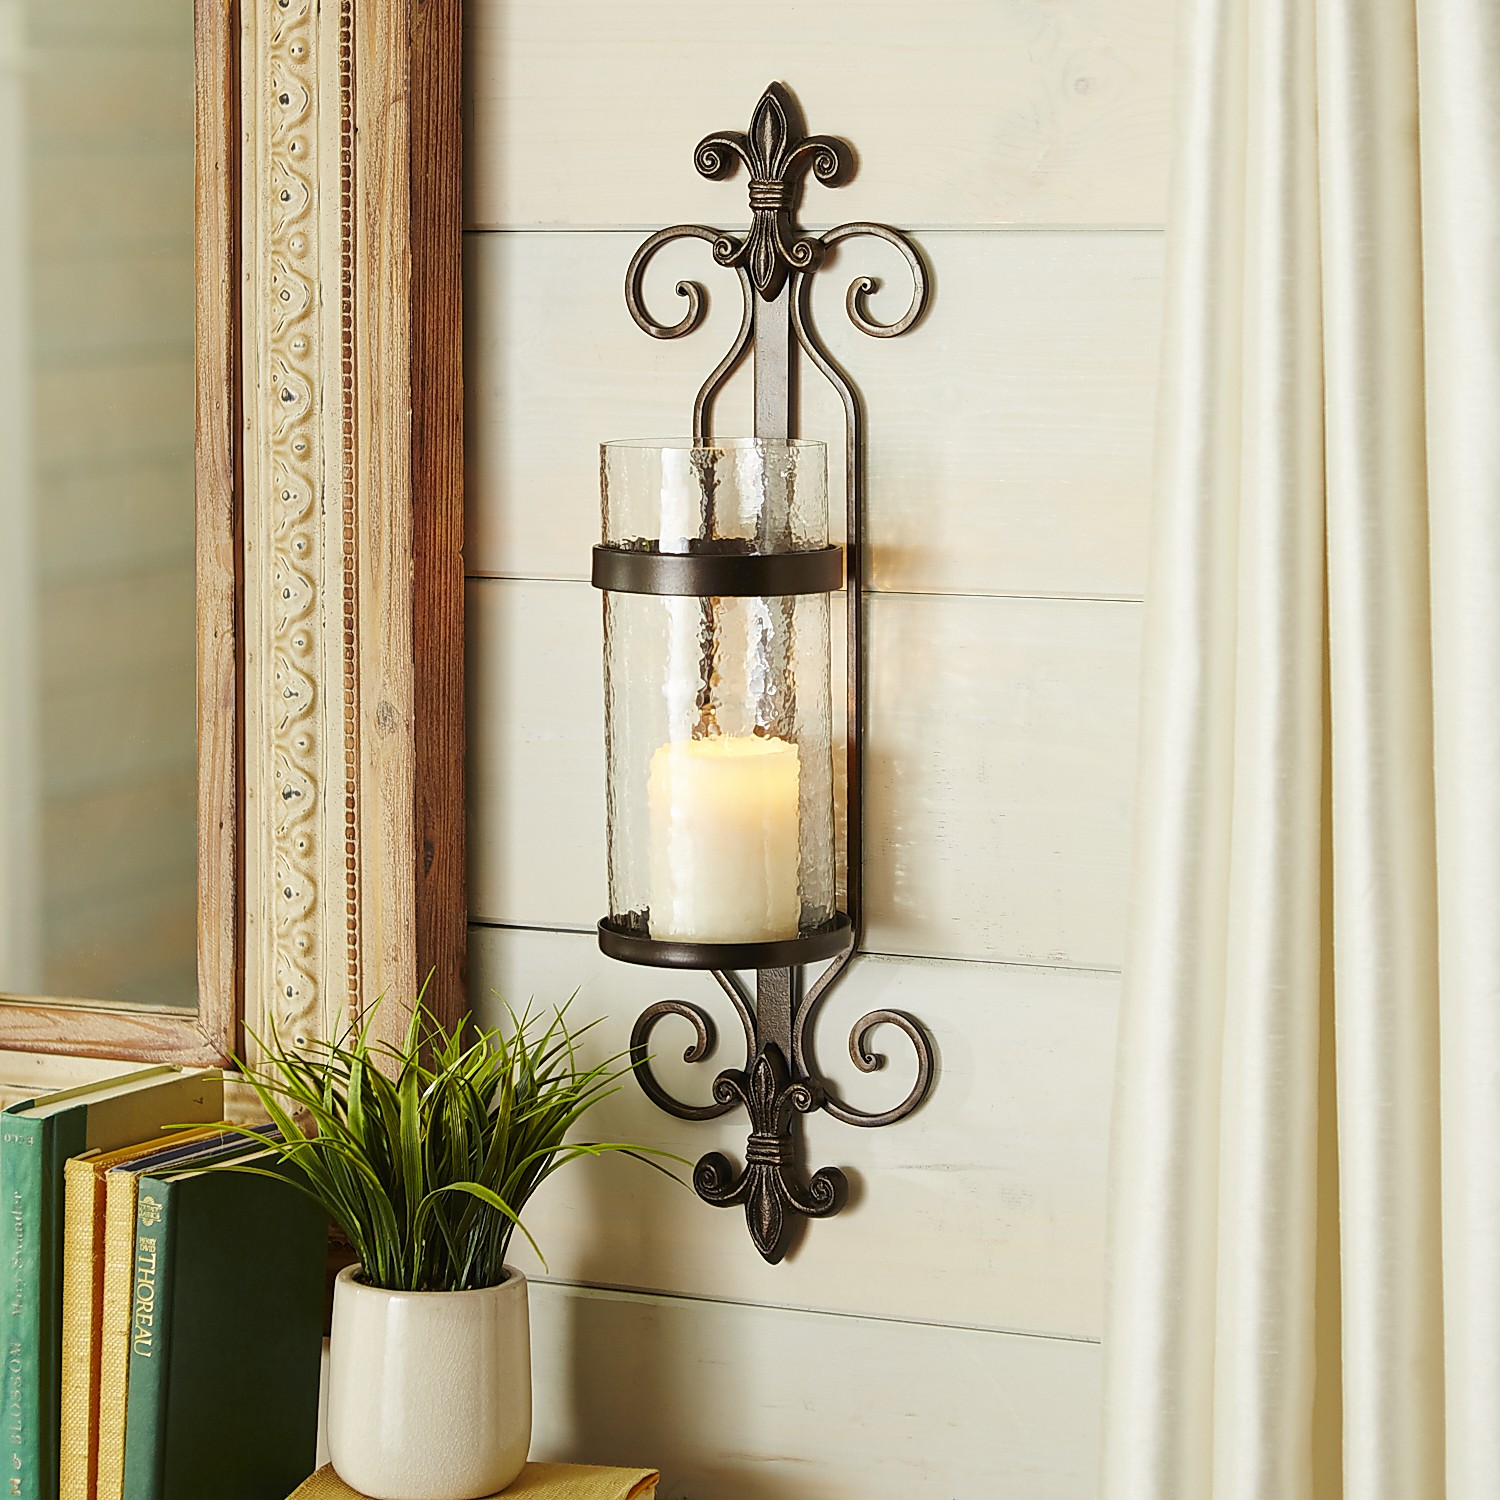 Iron Fleur-De-Lis Pillar Candle Wall Sconce — Pier 1 on Iron Wall Sconces For Candles id=95551